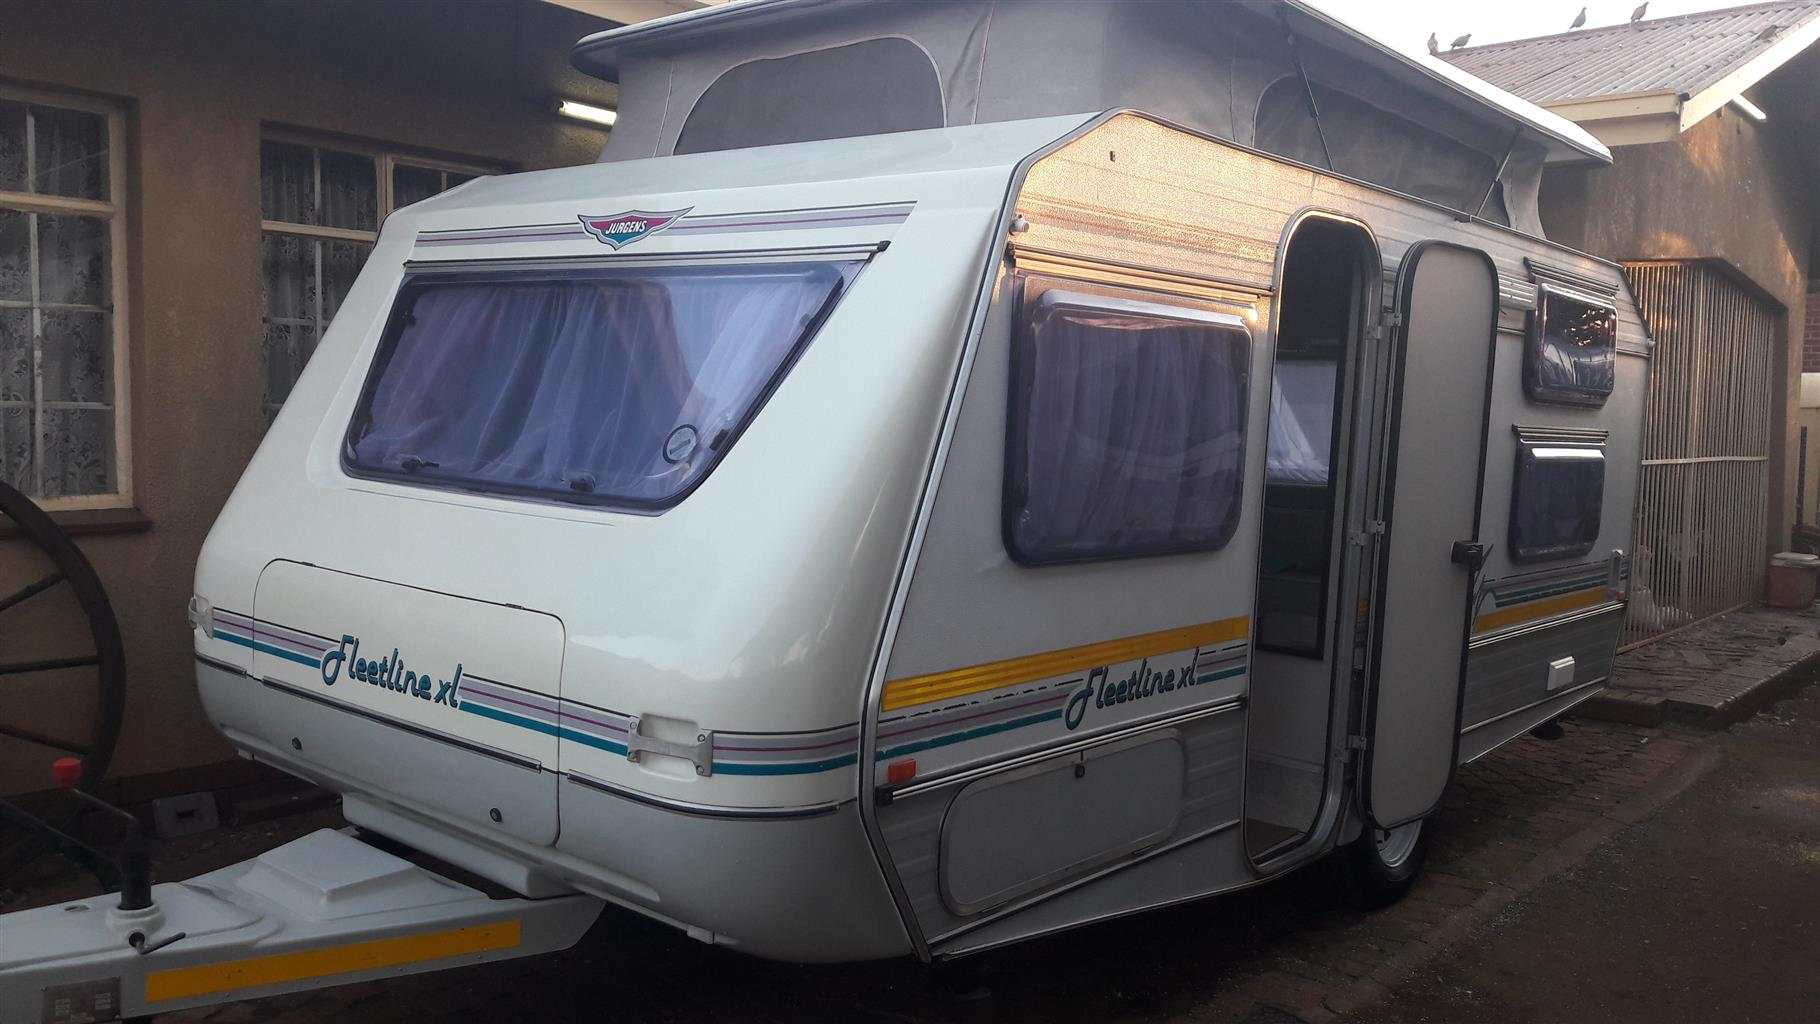 JURGENS FLEETLINE XL WITH FULL TENT AND RALLY TENT IN EXCELLENT CONDITION MUST BE SEEN